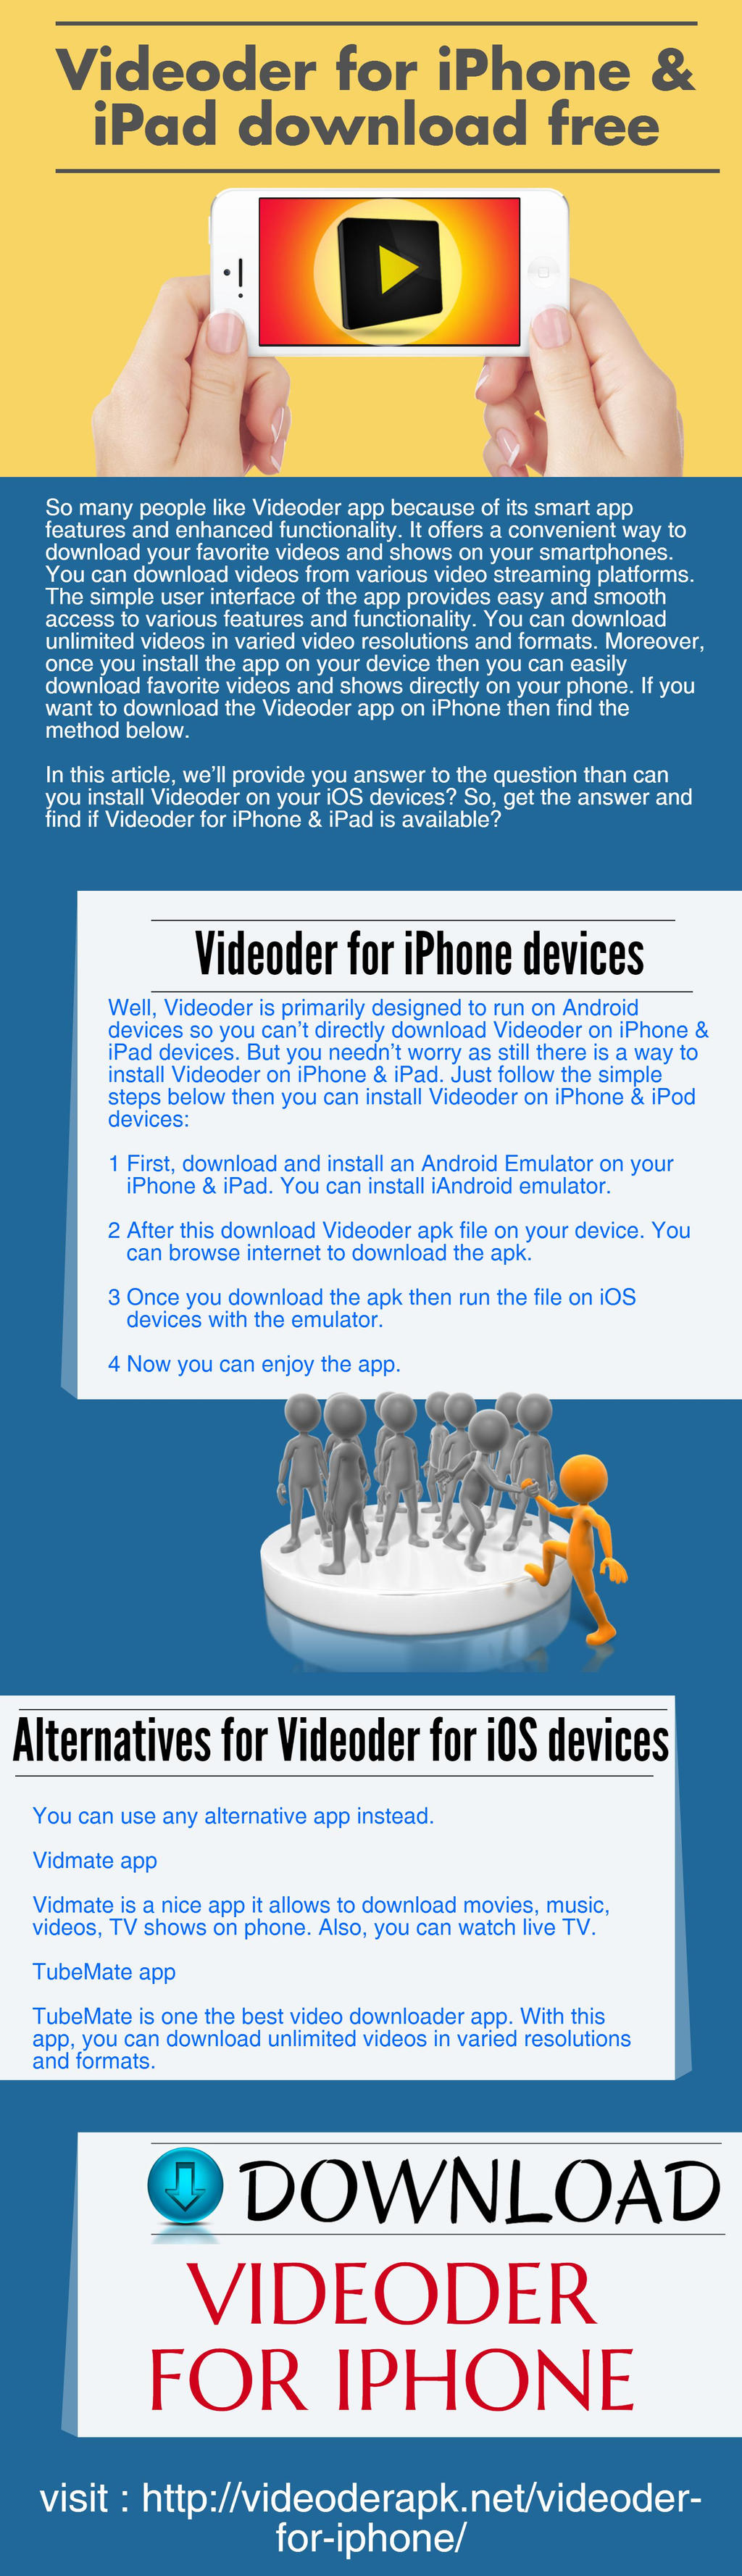 Videoder For IPhone And IPad Download Free by videoderapk on